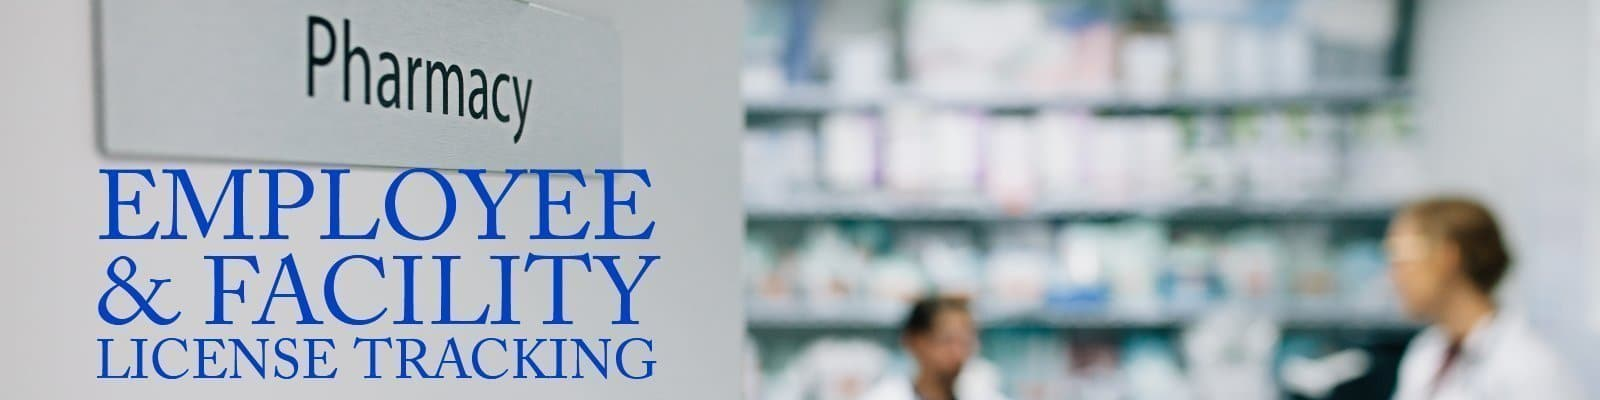 employee and facility license tracking for pharmacies, pharmacy compliance, pharmacy regulatory compliance